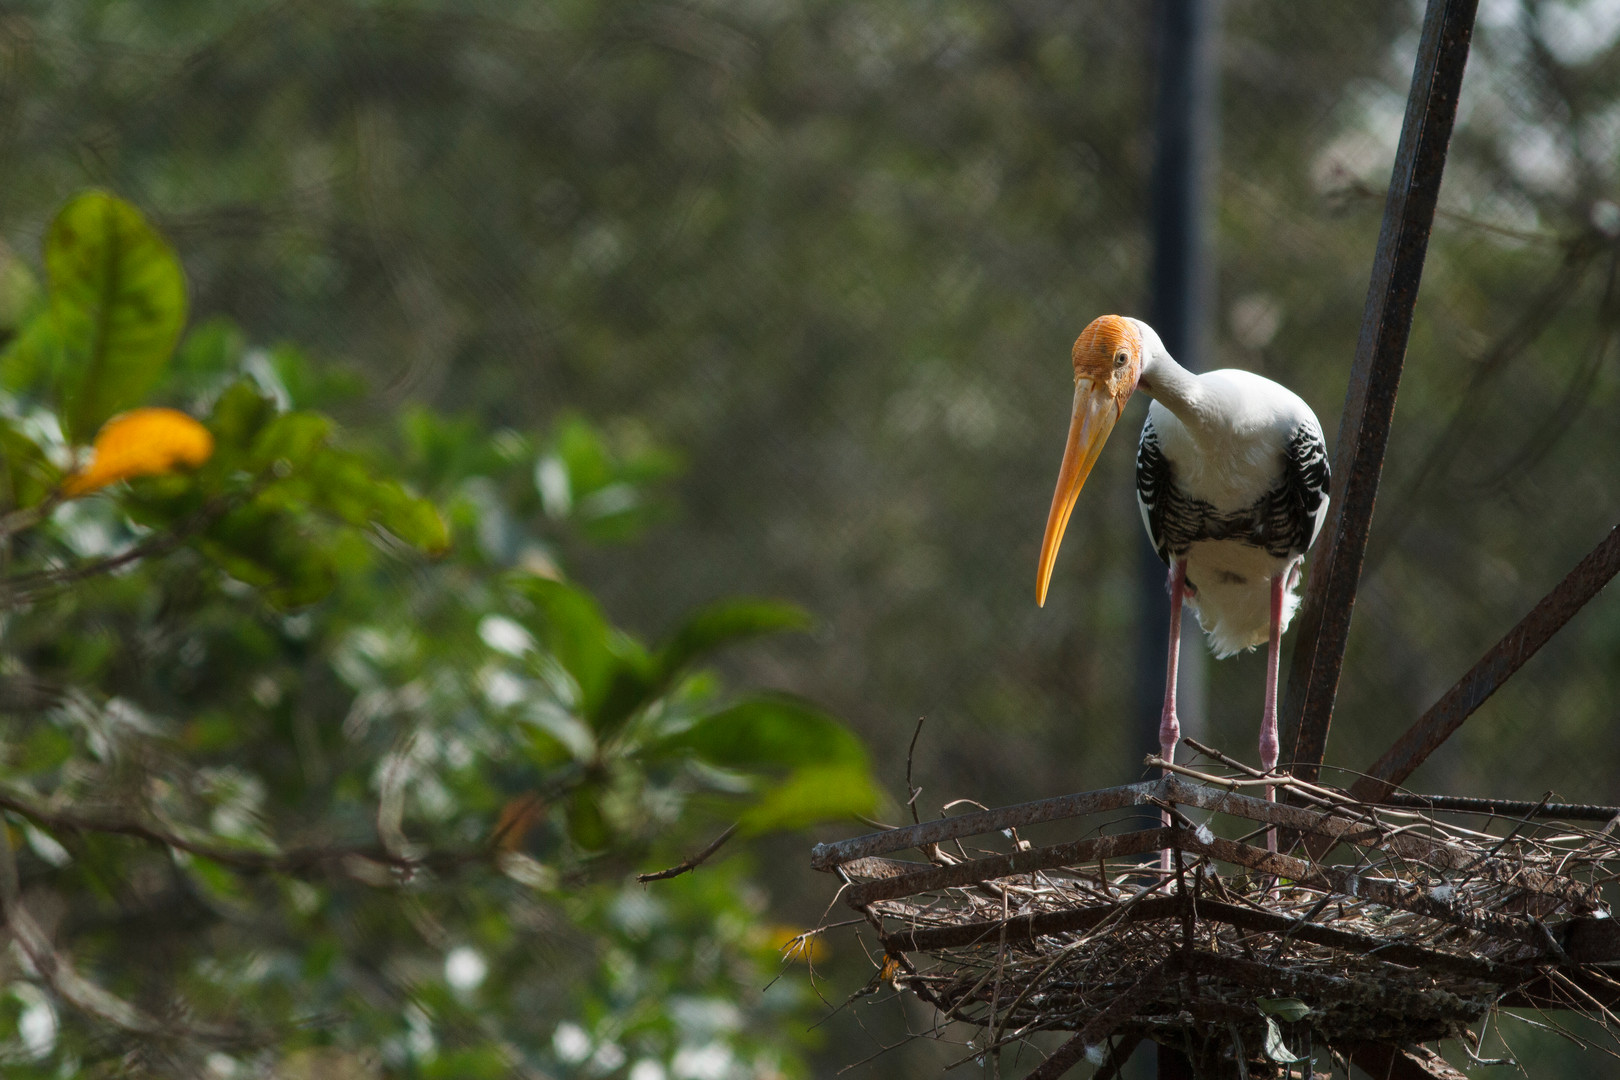 Painted Stork in its enclosure at the Phnom Tamao centre